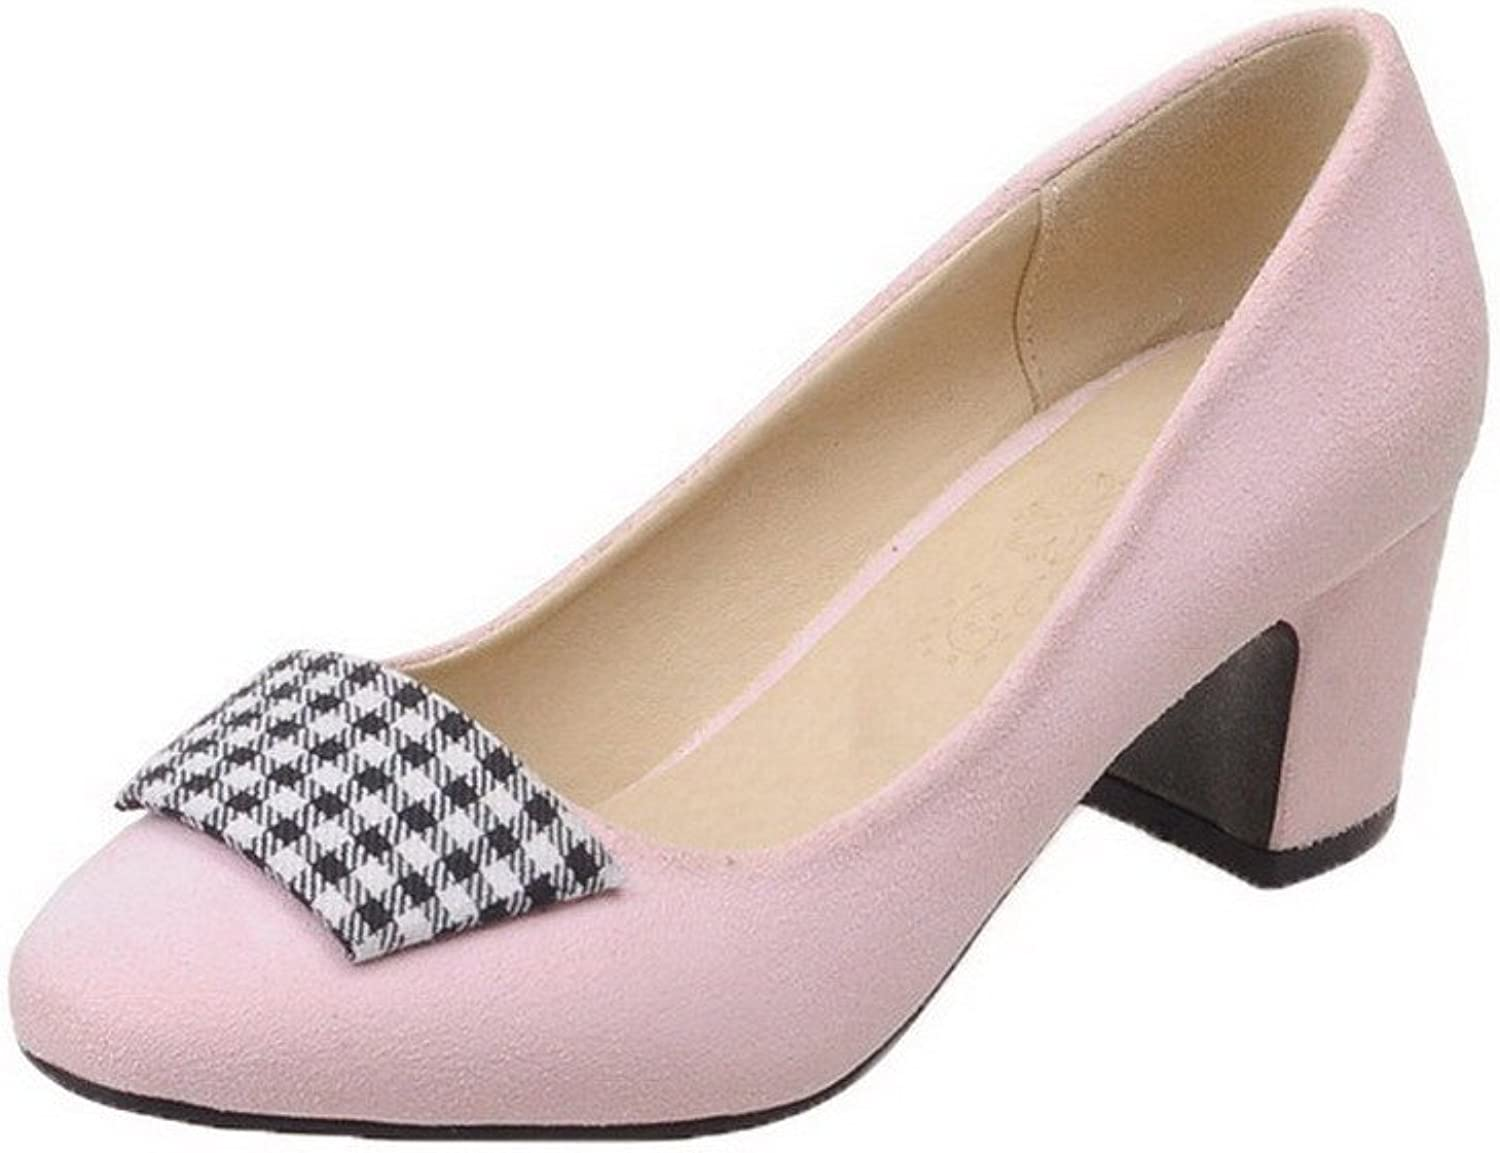 WeiPoot Women's Solid Imitated Suede Kitten-Heels Pull-on Pumps-shoes